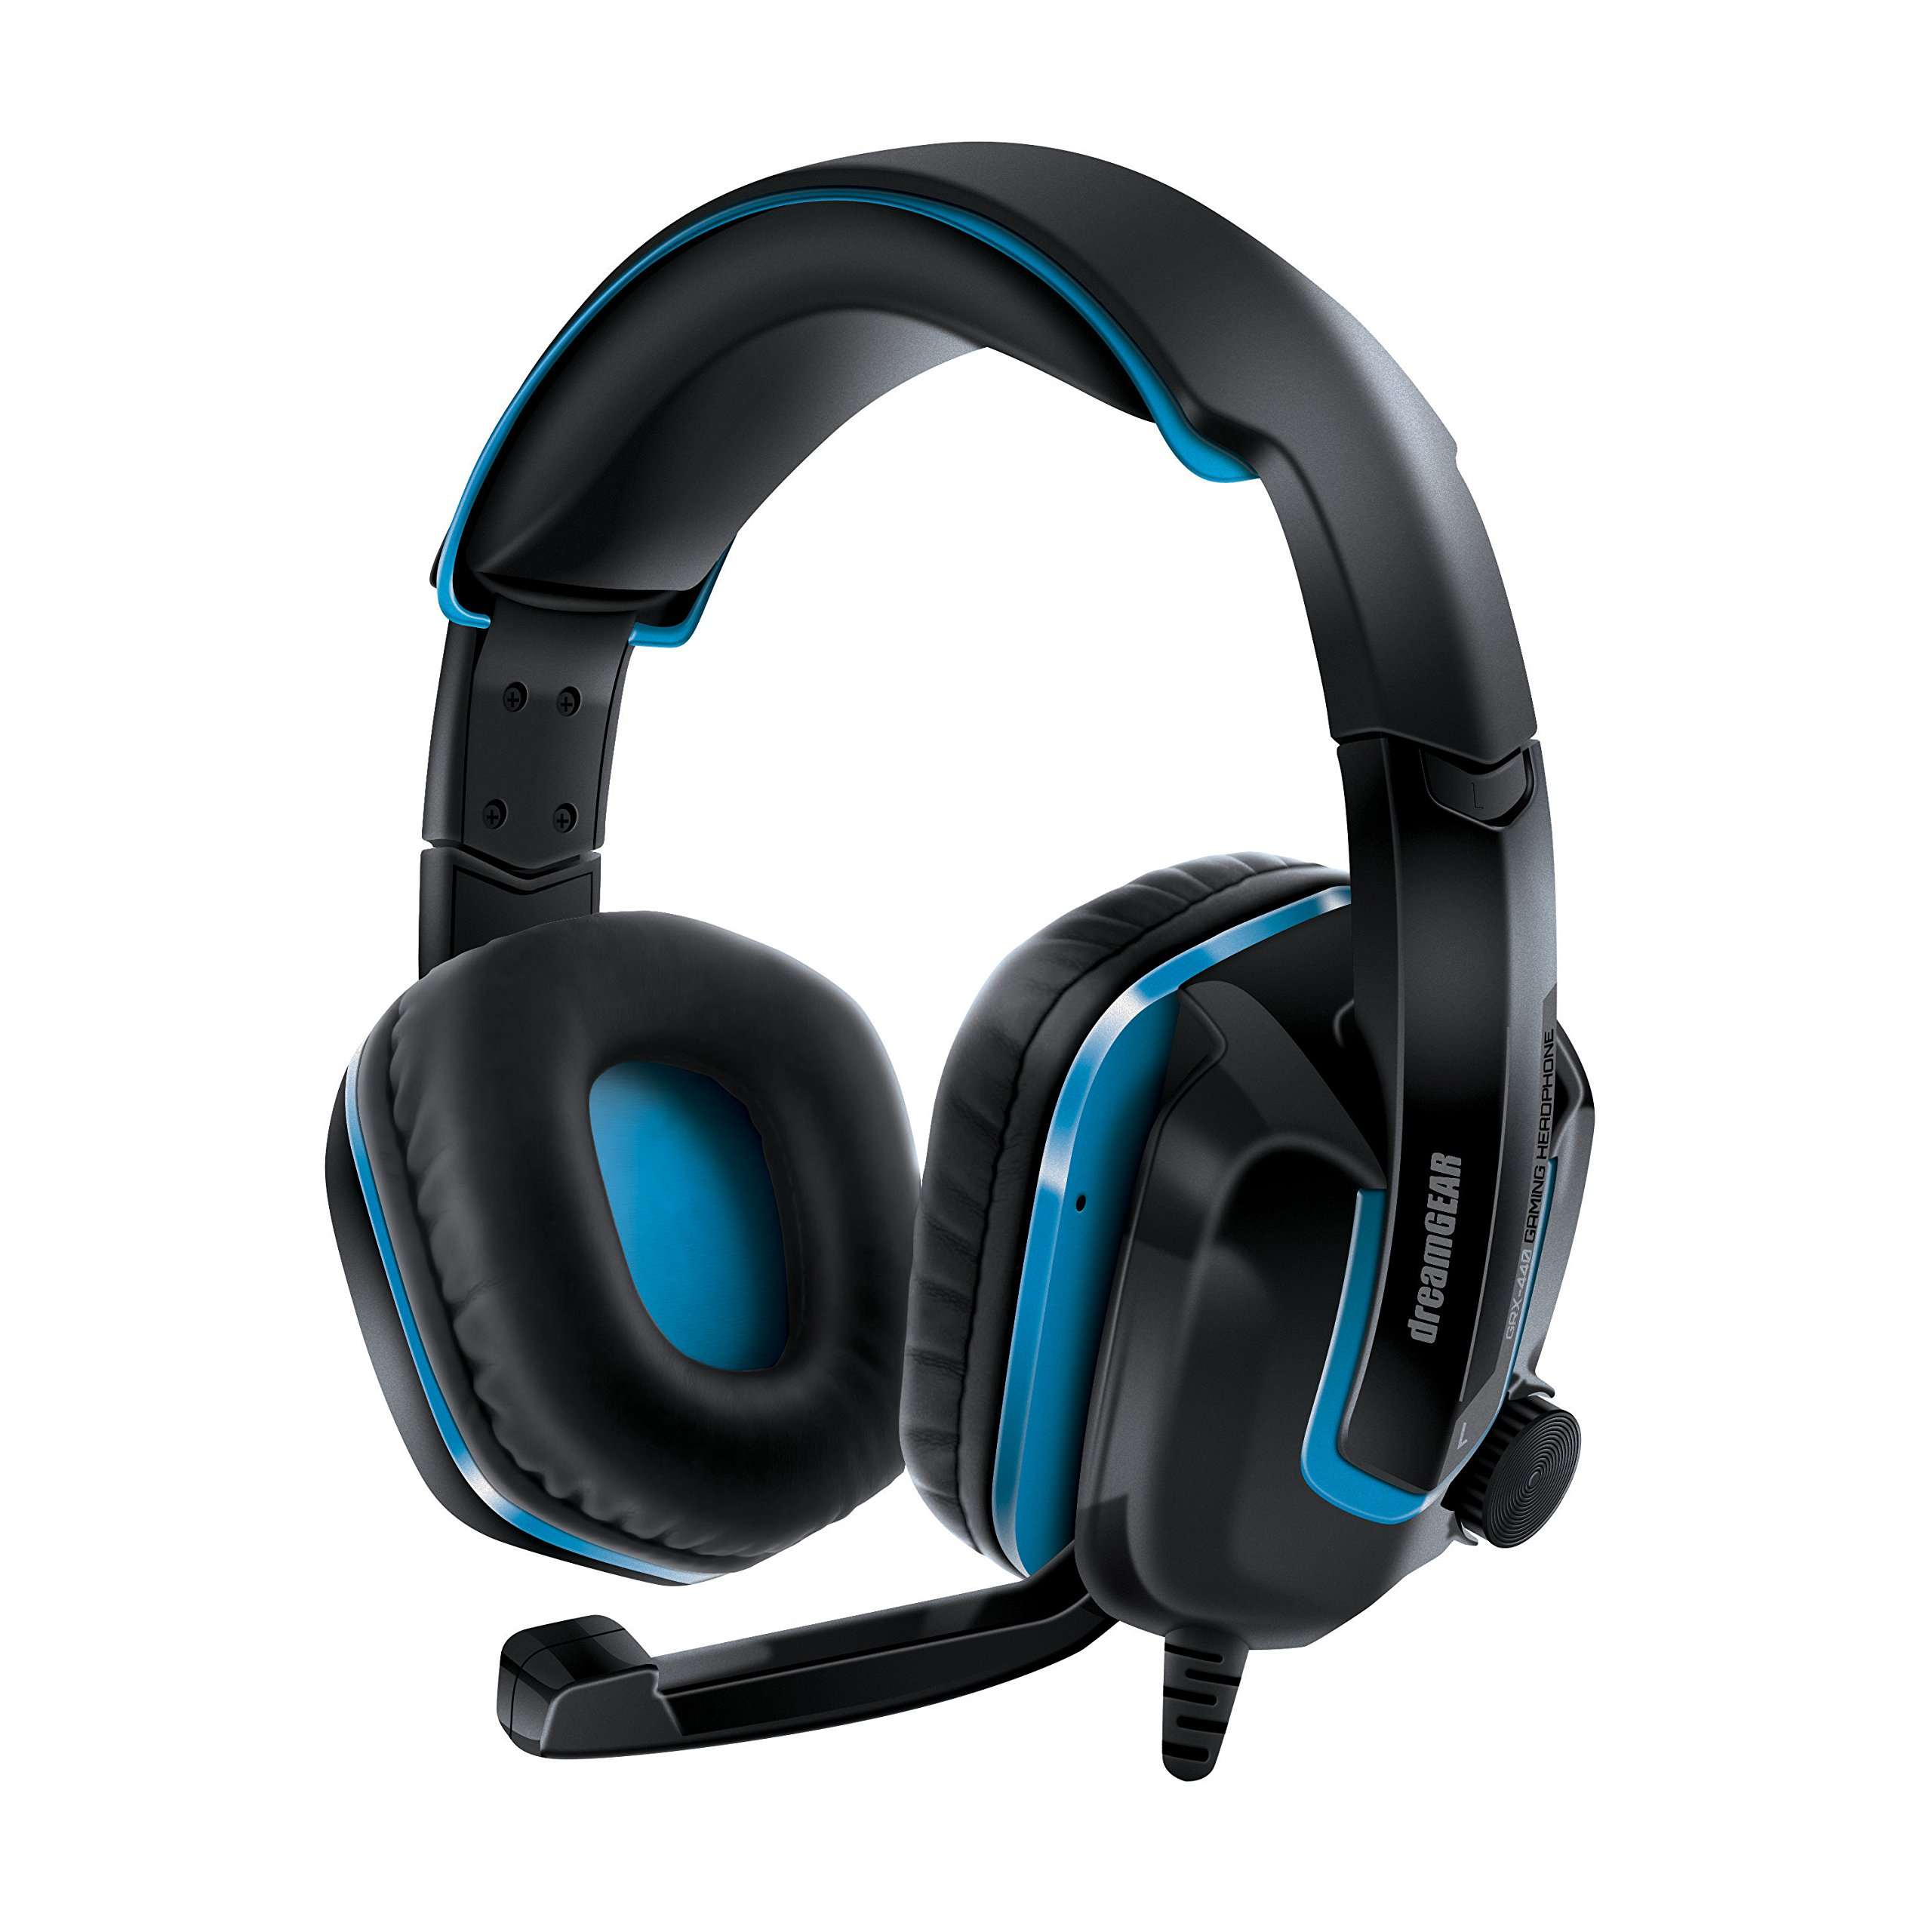 Dreamgear DGPS46447 Grx440 Ps4 Wired Headset